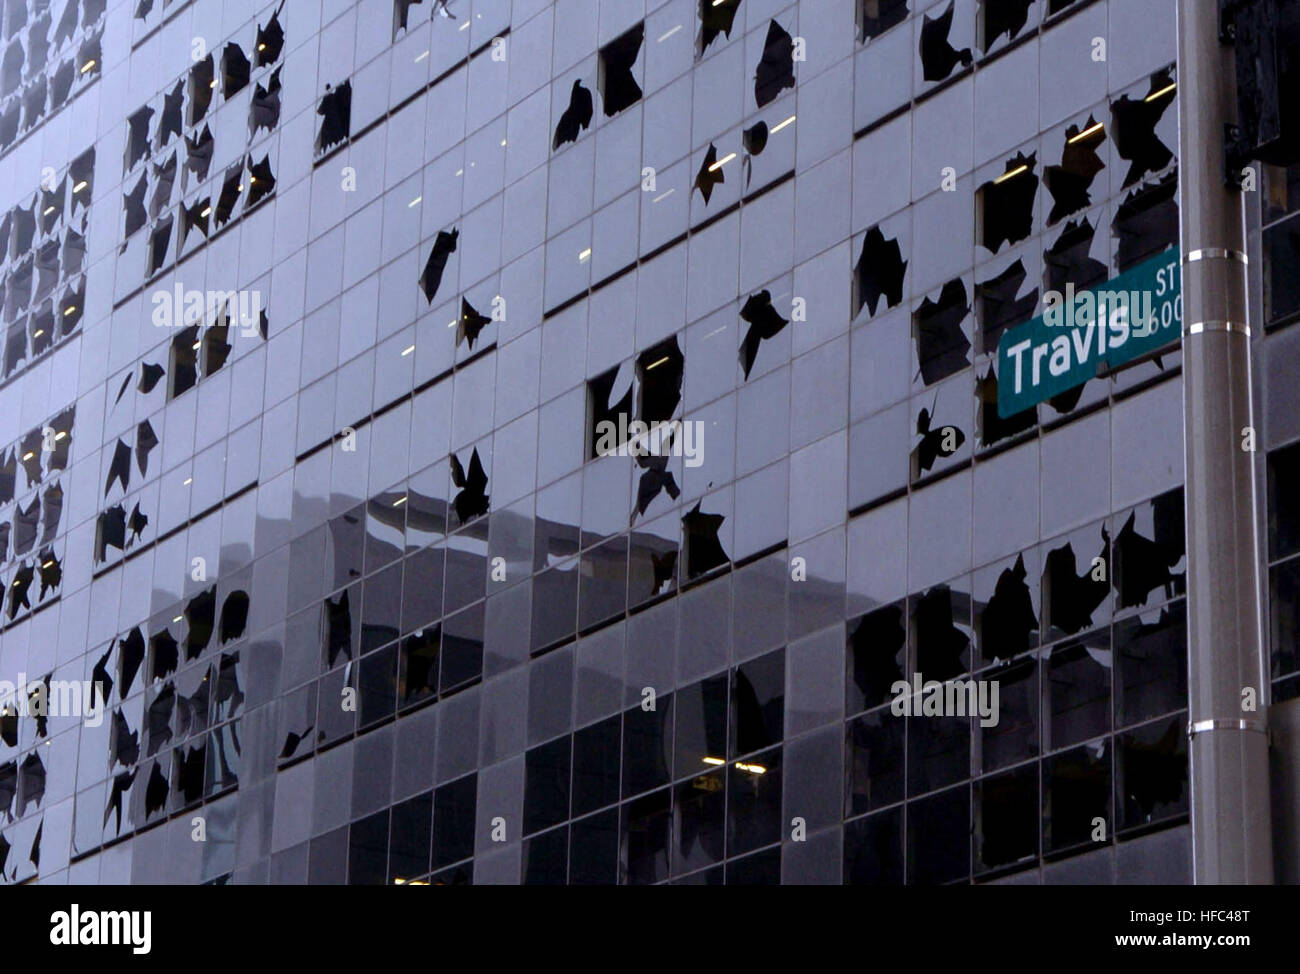 Hig Rise Stock Photos & Hig Rise Stock Images - Alamy